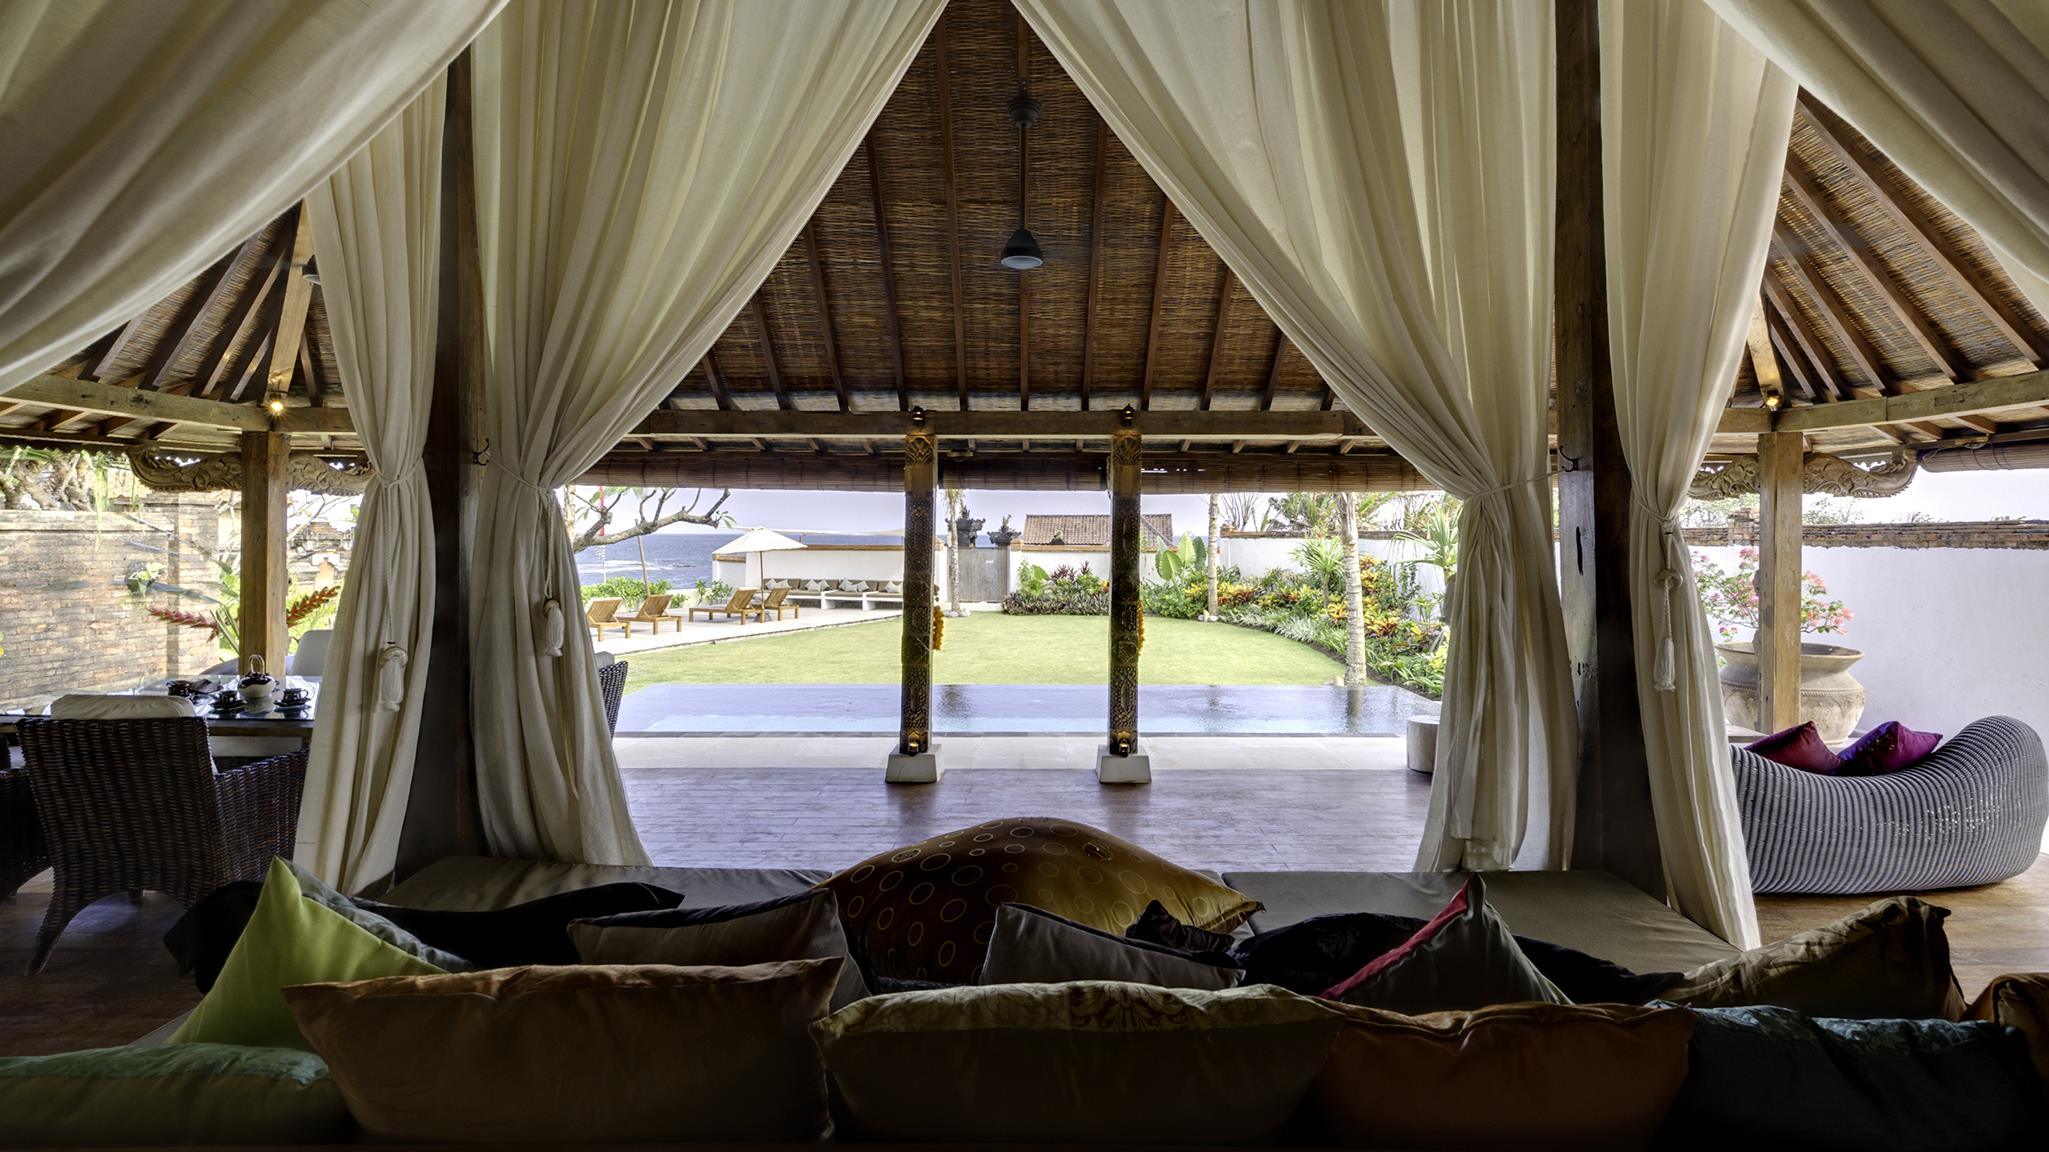 King Size Bed with Pool View - Majapahit Beach Villas - Sanur, Bali